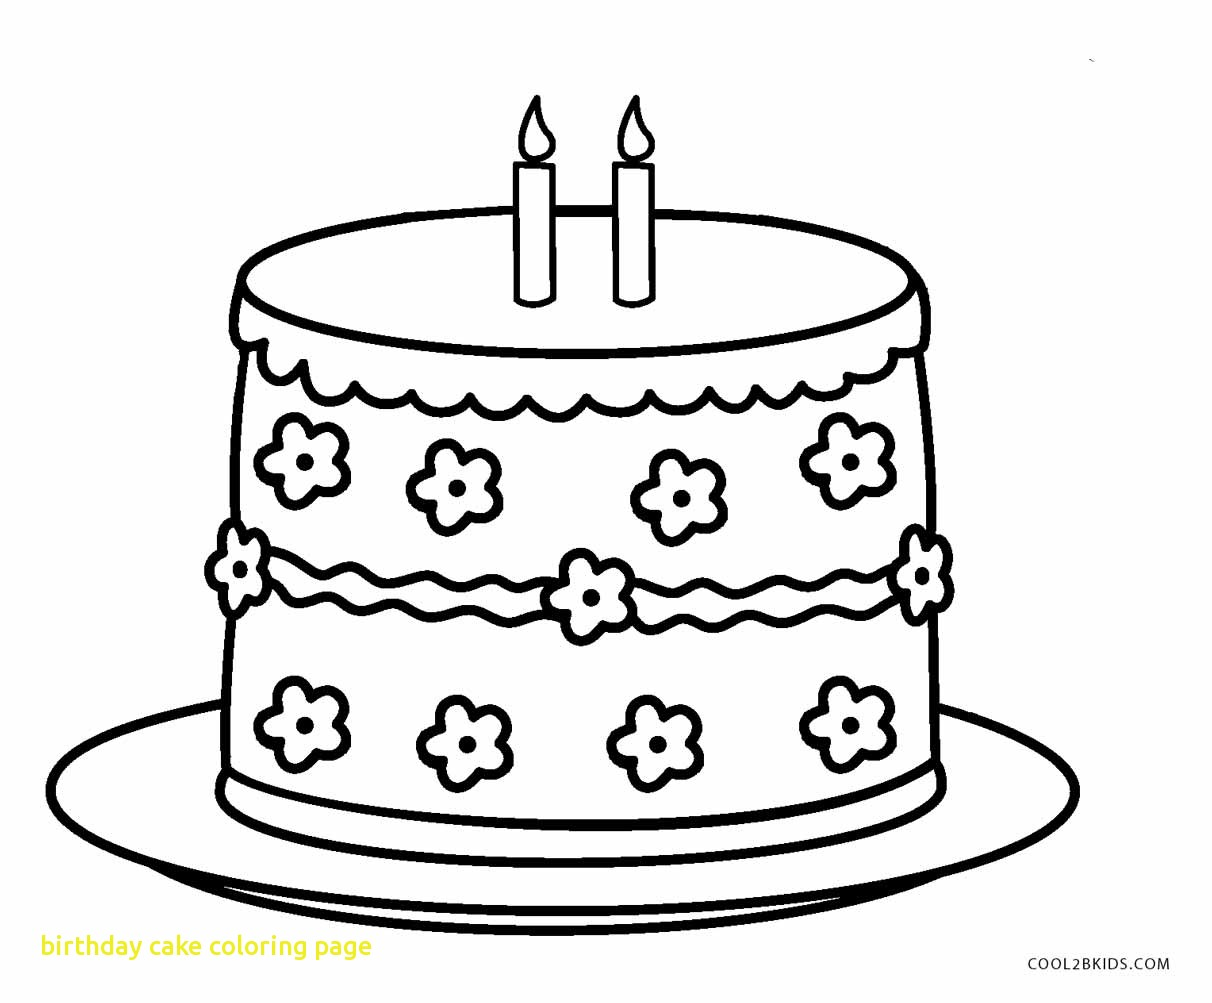 1212x1003 Birthday Cake Coloring Page With Free Printable Pages For Kids